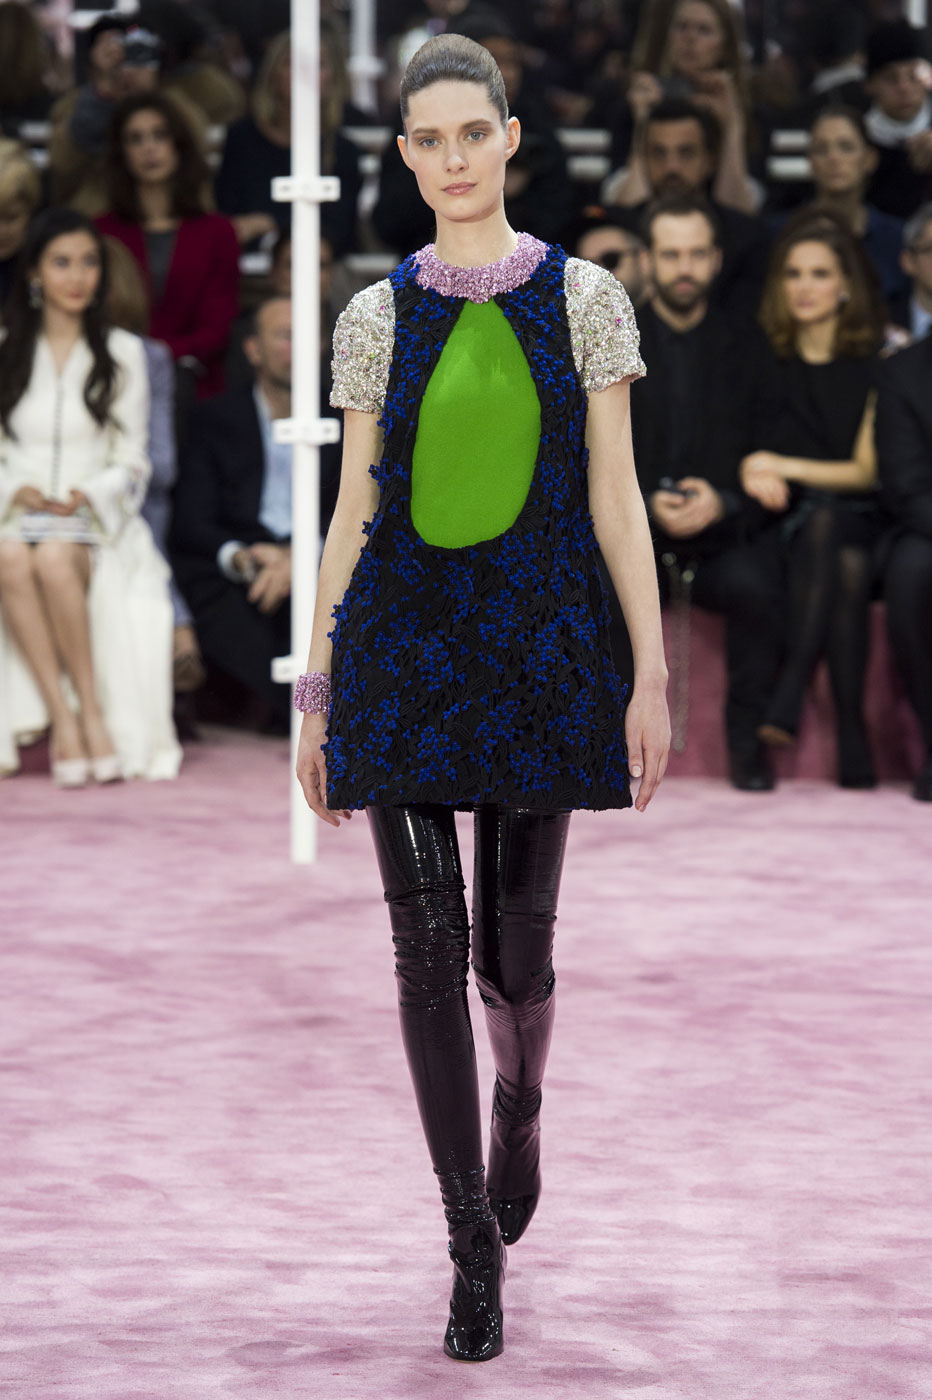 Christian-Dior-fashion-runway-show-haute-couture-paris-spring-summer-2015-the-impression-025